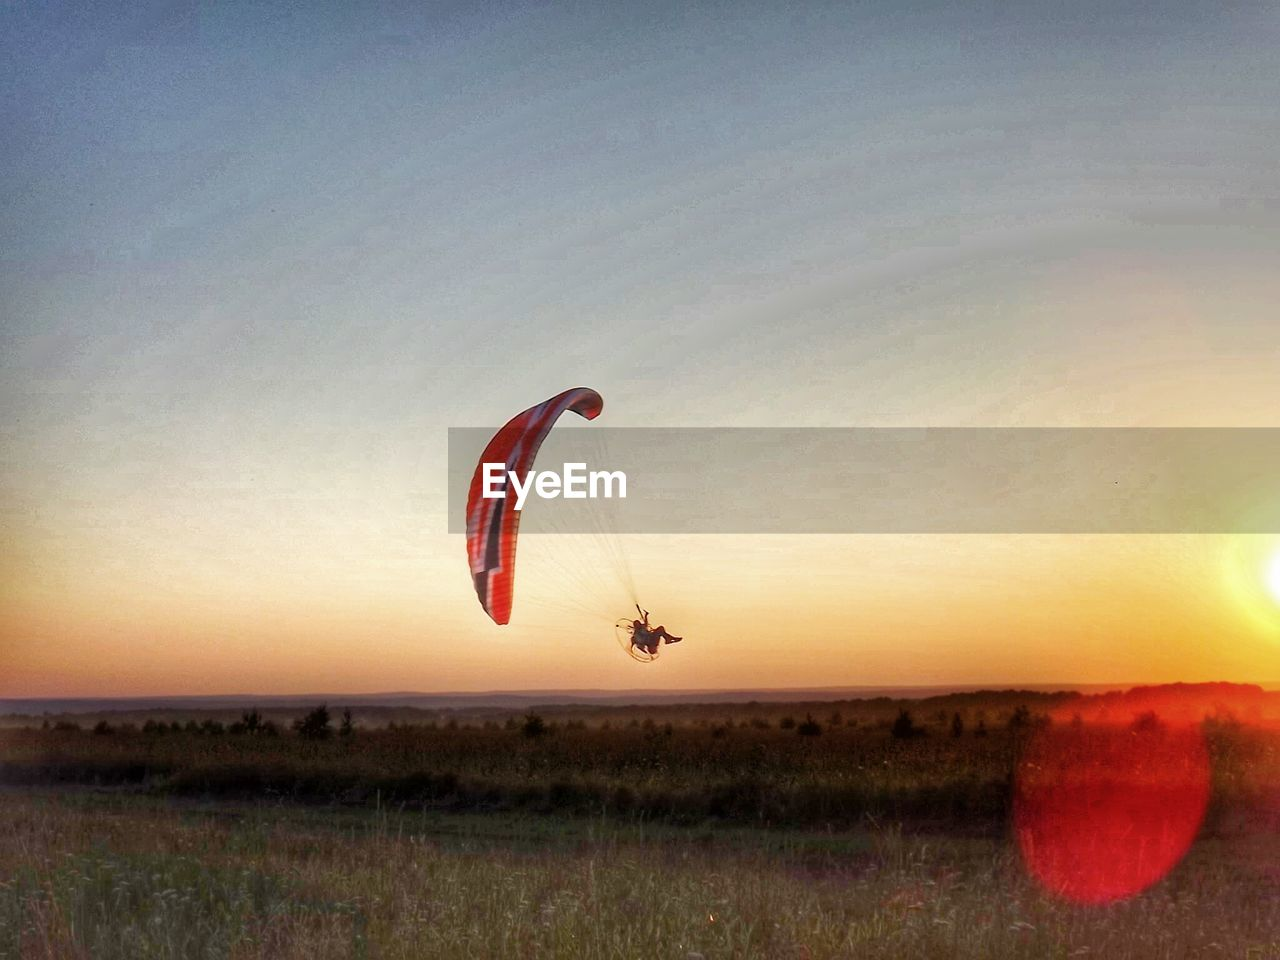 Man flying powered parachute over grassy field against clear sky during sunset